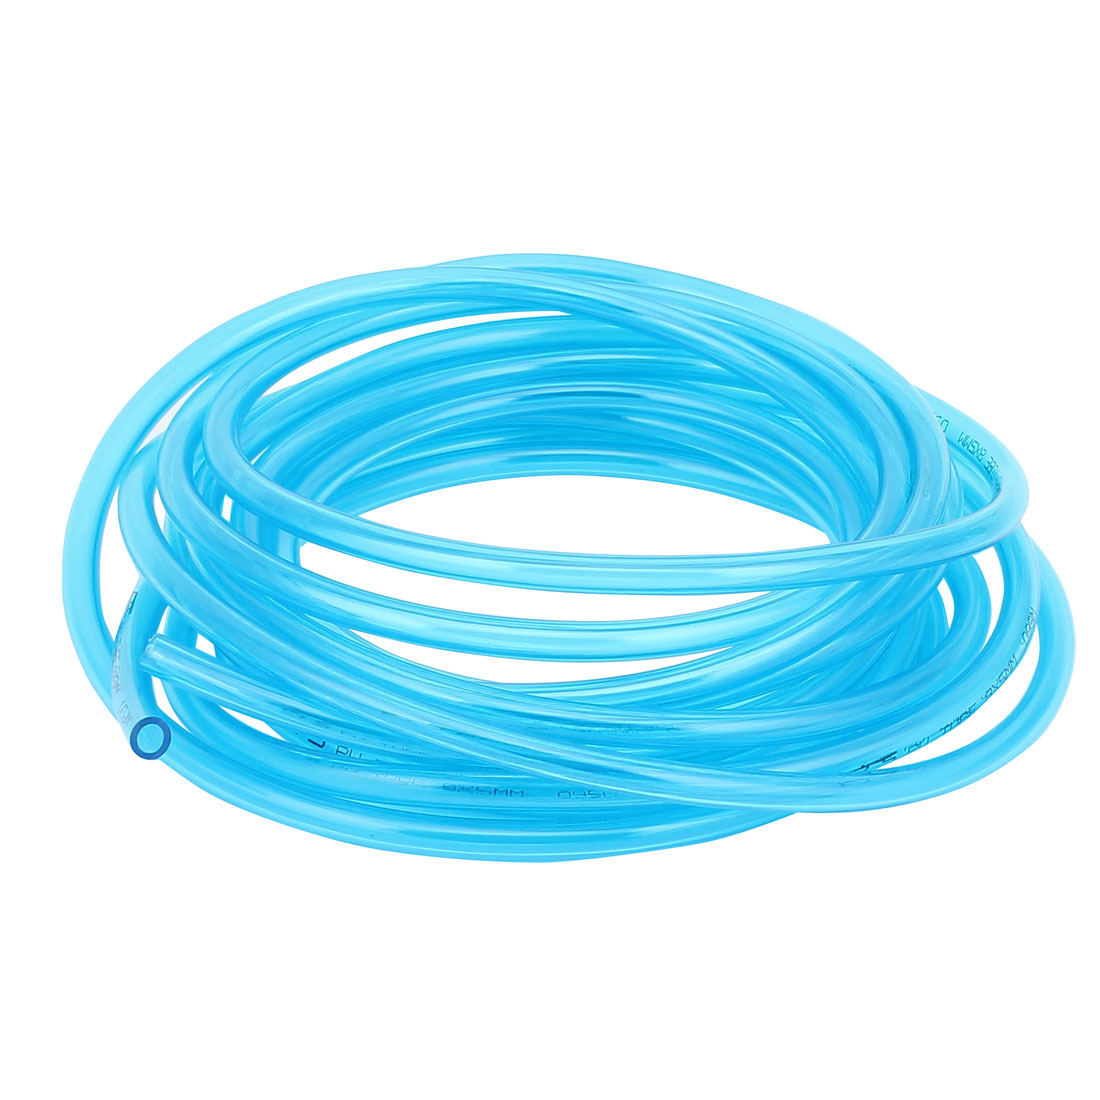 8mm OD x 5mm ID PU Pneumatic Air Tubing Pipe Hose 6 Meter 19.7ft Blue